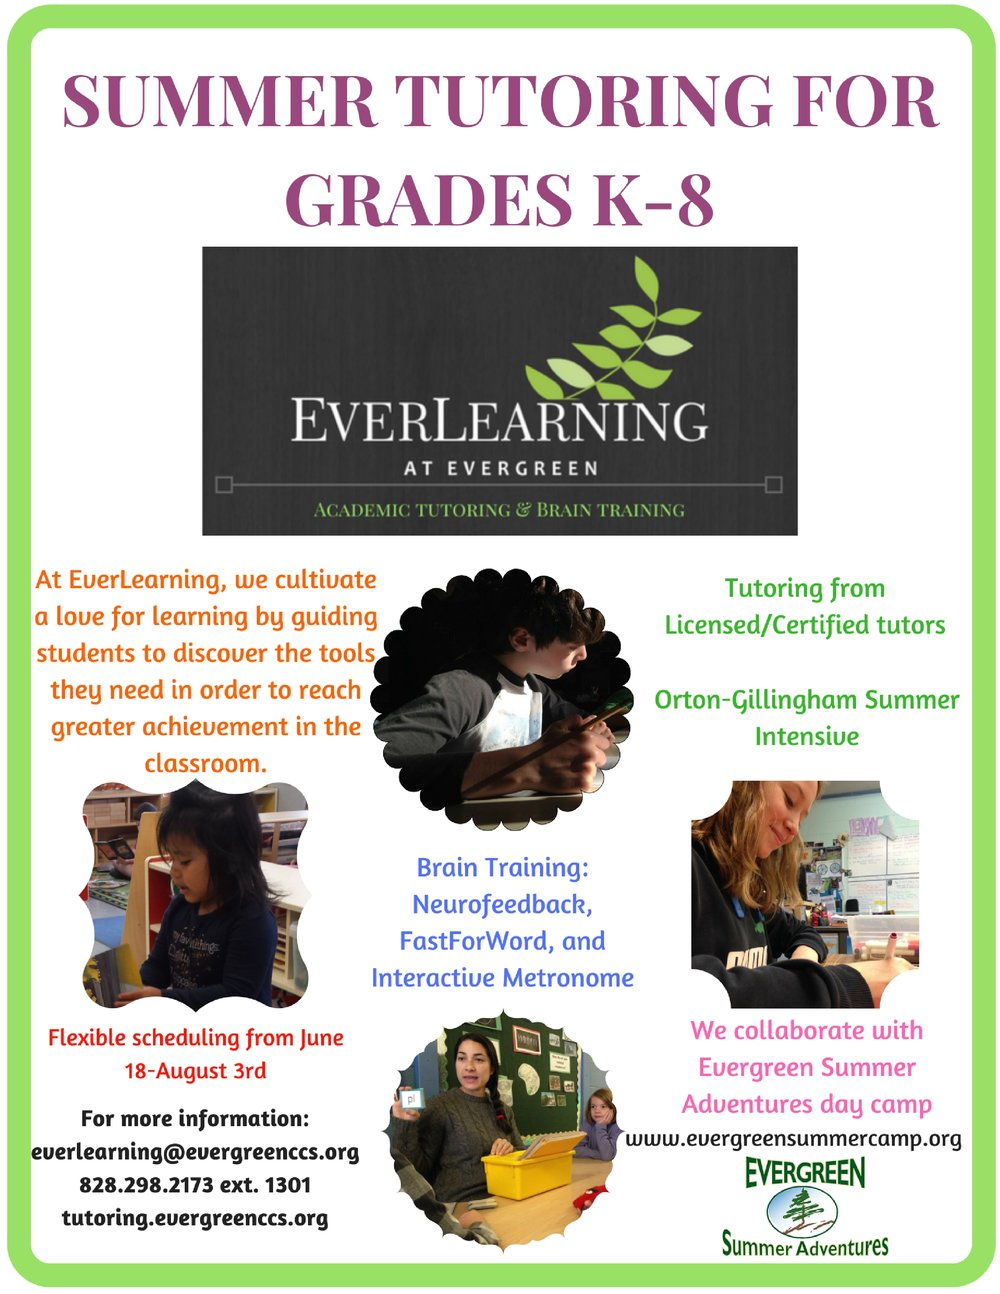 Summer Tutoring for K-8 students jpg.jpg